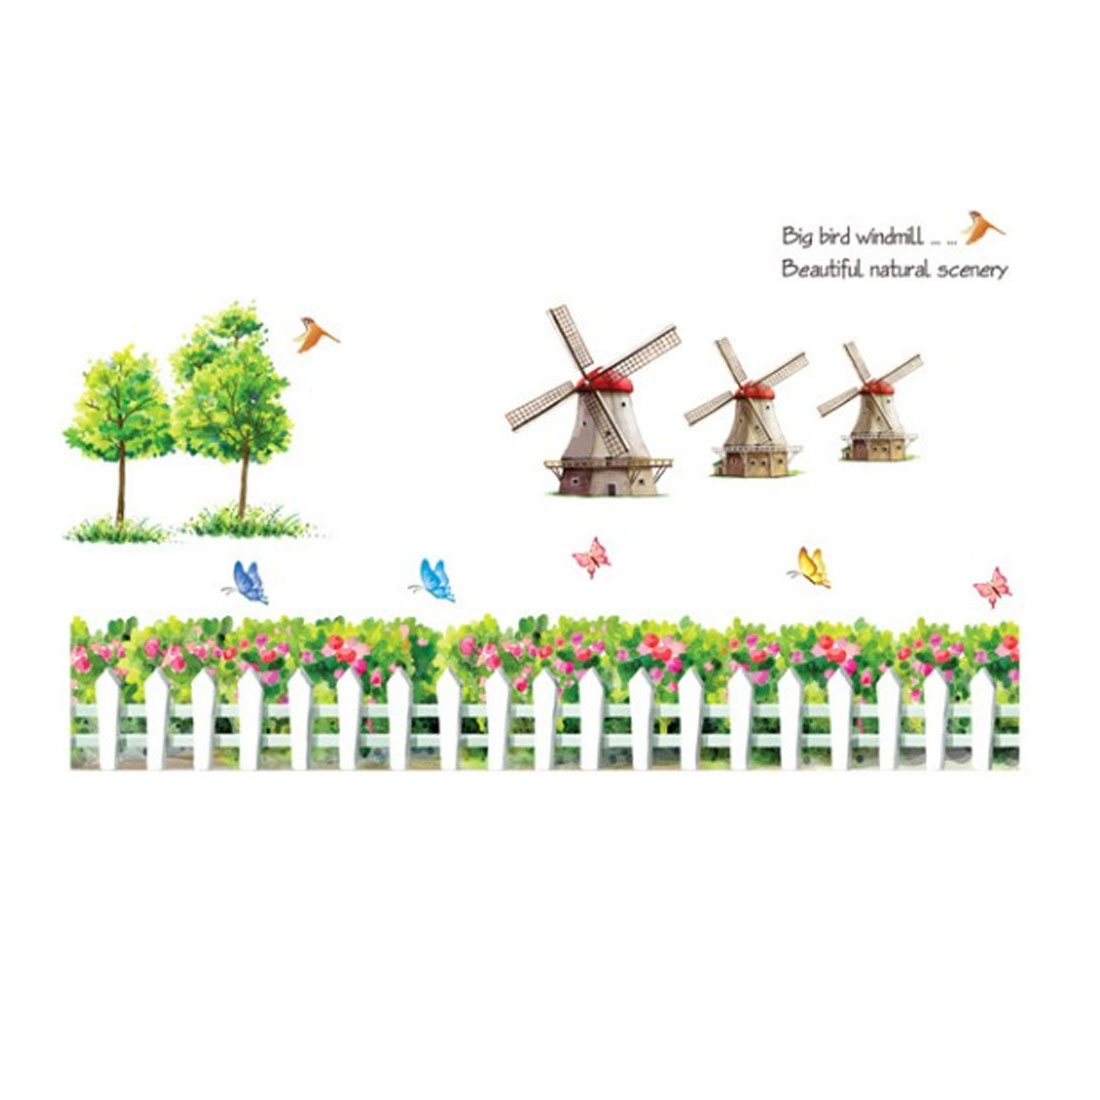 "Bedroom Accent DIY Adhesive Gray Cartoon Windmill Wall Sticker Decal 47"" x 30"" Green"